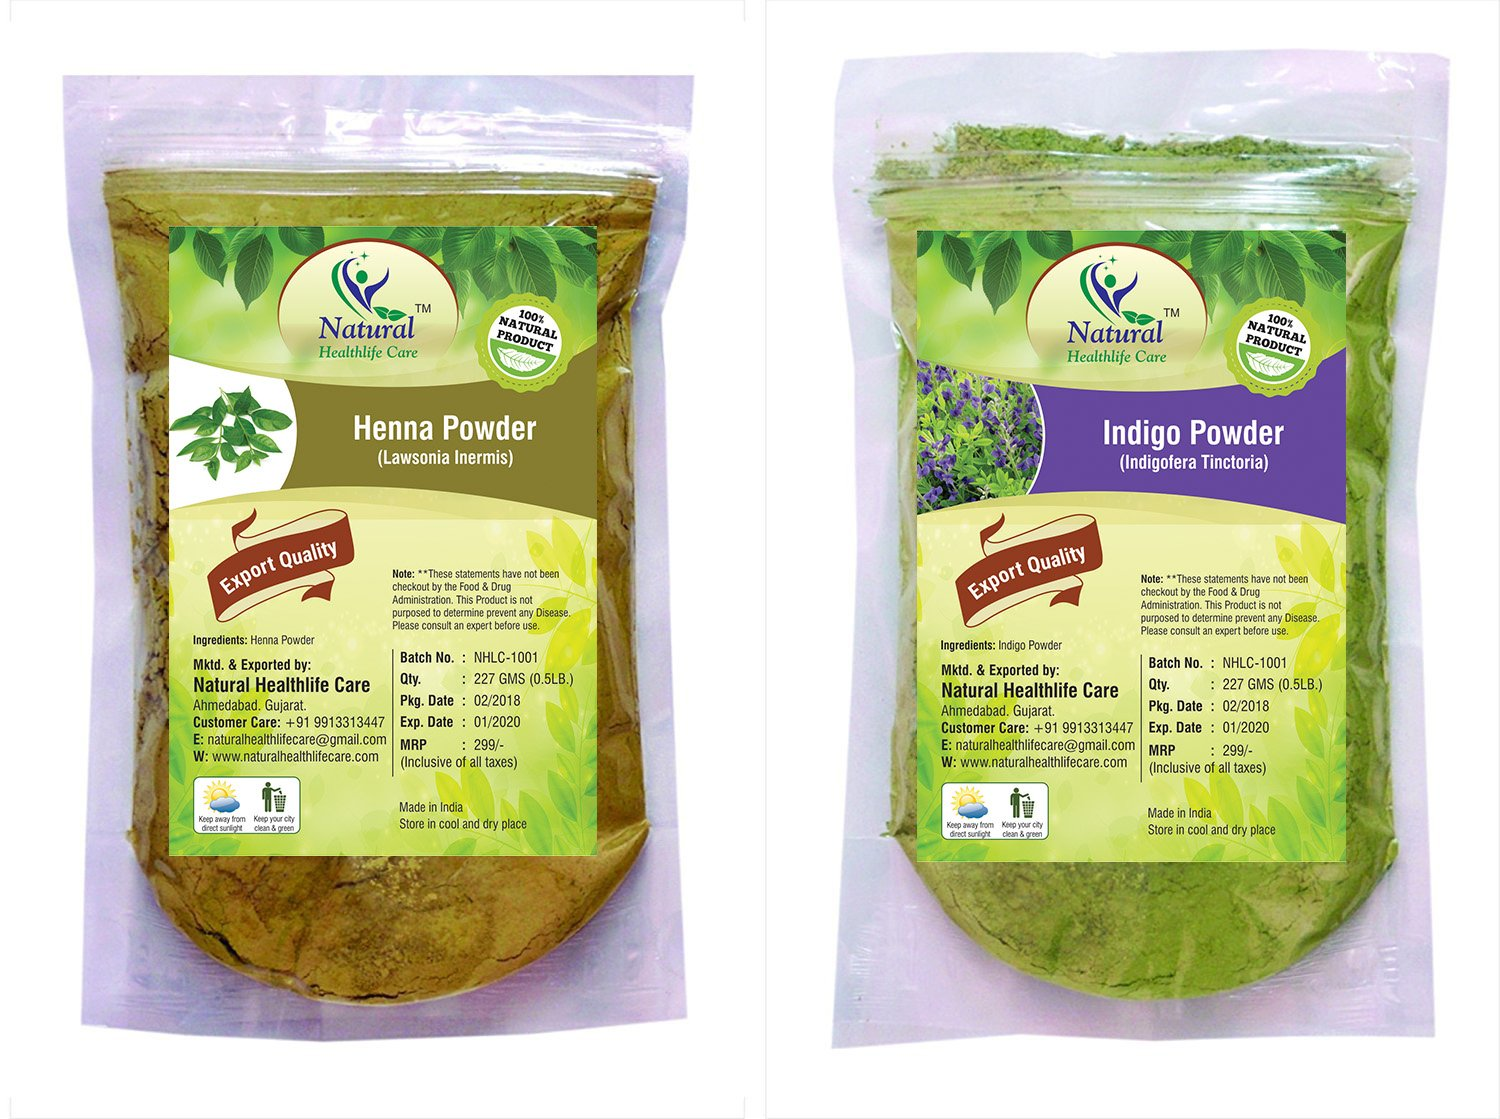 Natural Healthlife Care Natural Henna/Lawsonia Inermis and Indigo/Indigofera Tinctoria Leaves Powder, 227g (henna indigo -454) - Pack of 2 product image